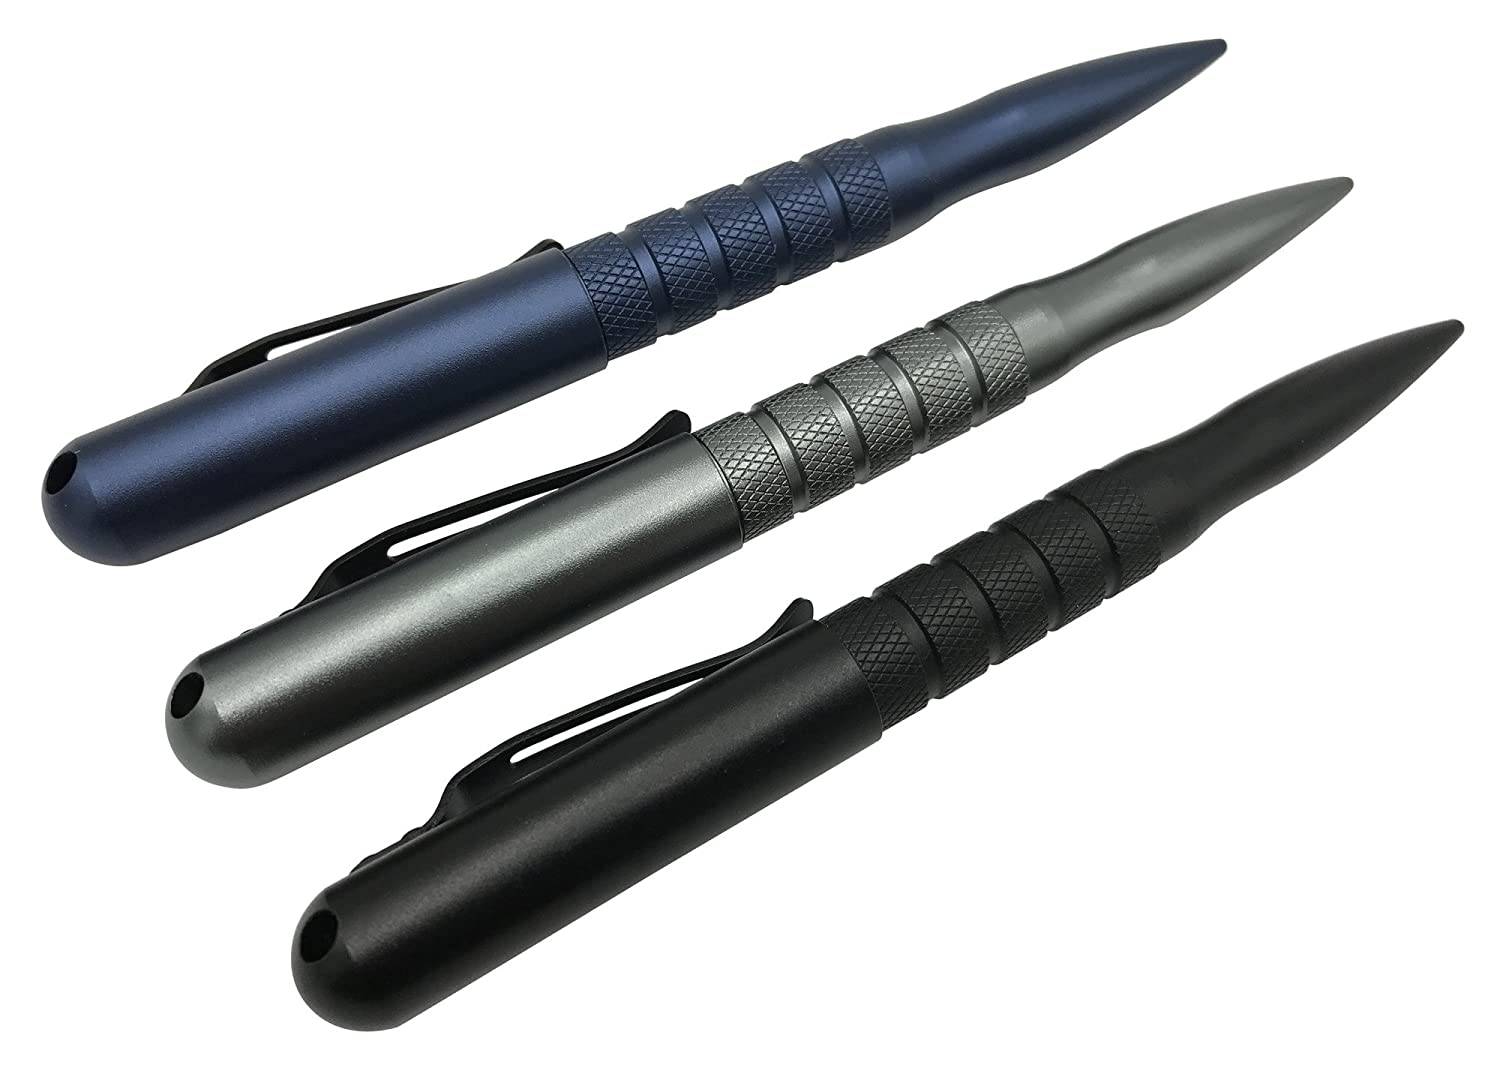 Best Design for Quick Protective Use and Travel for Men and Women Practical Tactical Pen The Premium Discrete High-Strength Self Defense EDC Survival Tool with Pen 2 Inks 3 Colors